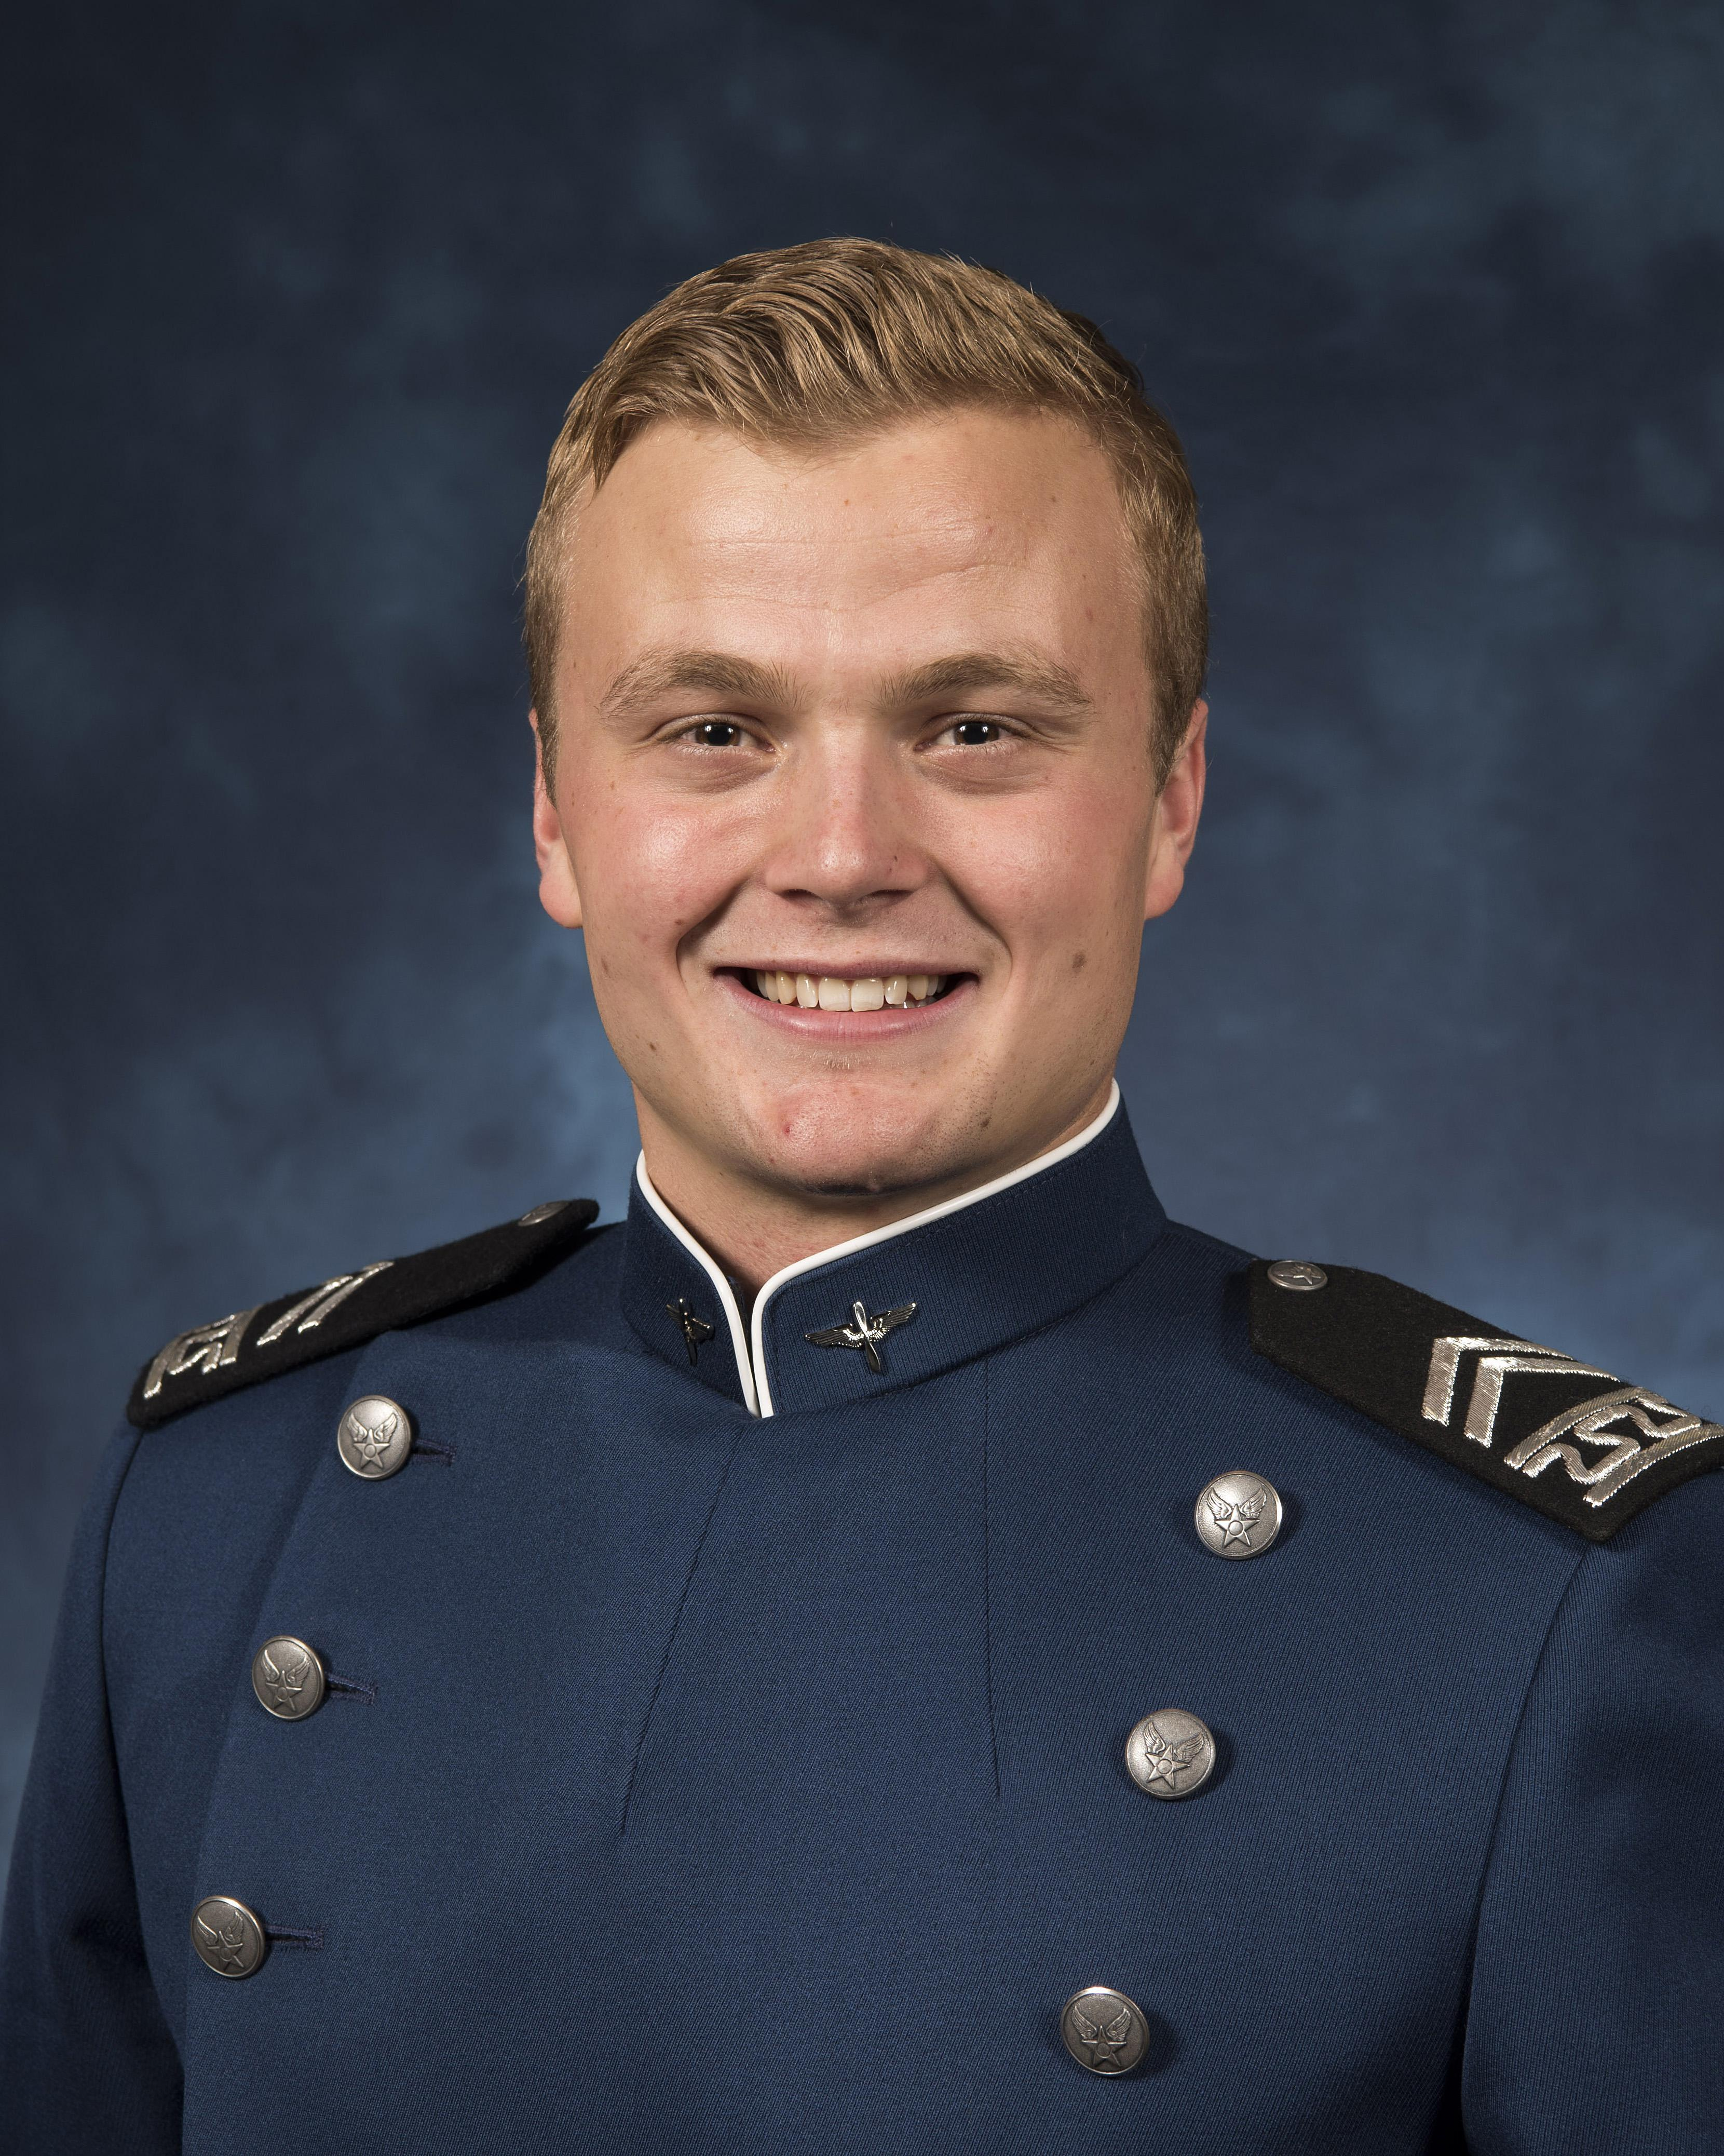 Matt Pulver learned the value of hard work from Rampage coach Andrew Sherman — an ethic that has been apparent in Pulver's first three seasons at Air Force.